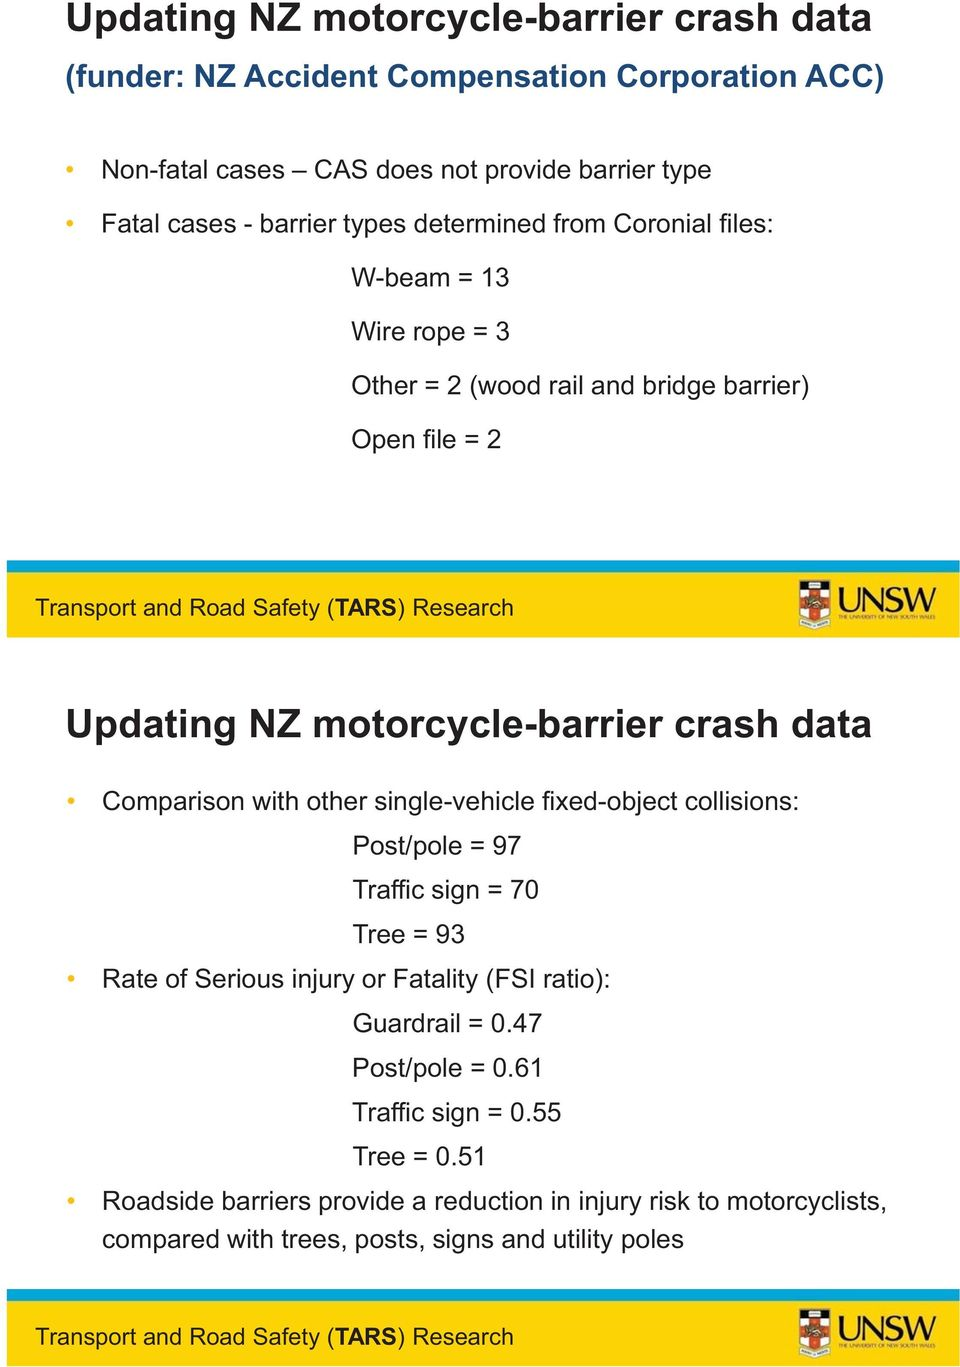 Comparison with other single-vehicle fixed-object collisions: Post/pole = 97 Traffic sign = 70 Tree = 93 Rate of Serious injury or Fatality (FSI ratio): Guardrail = 0.47 Post/pole = 0.